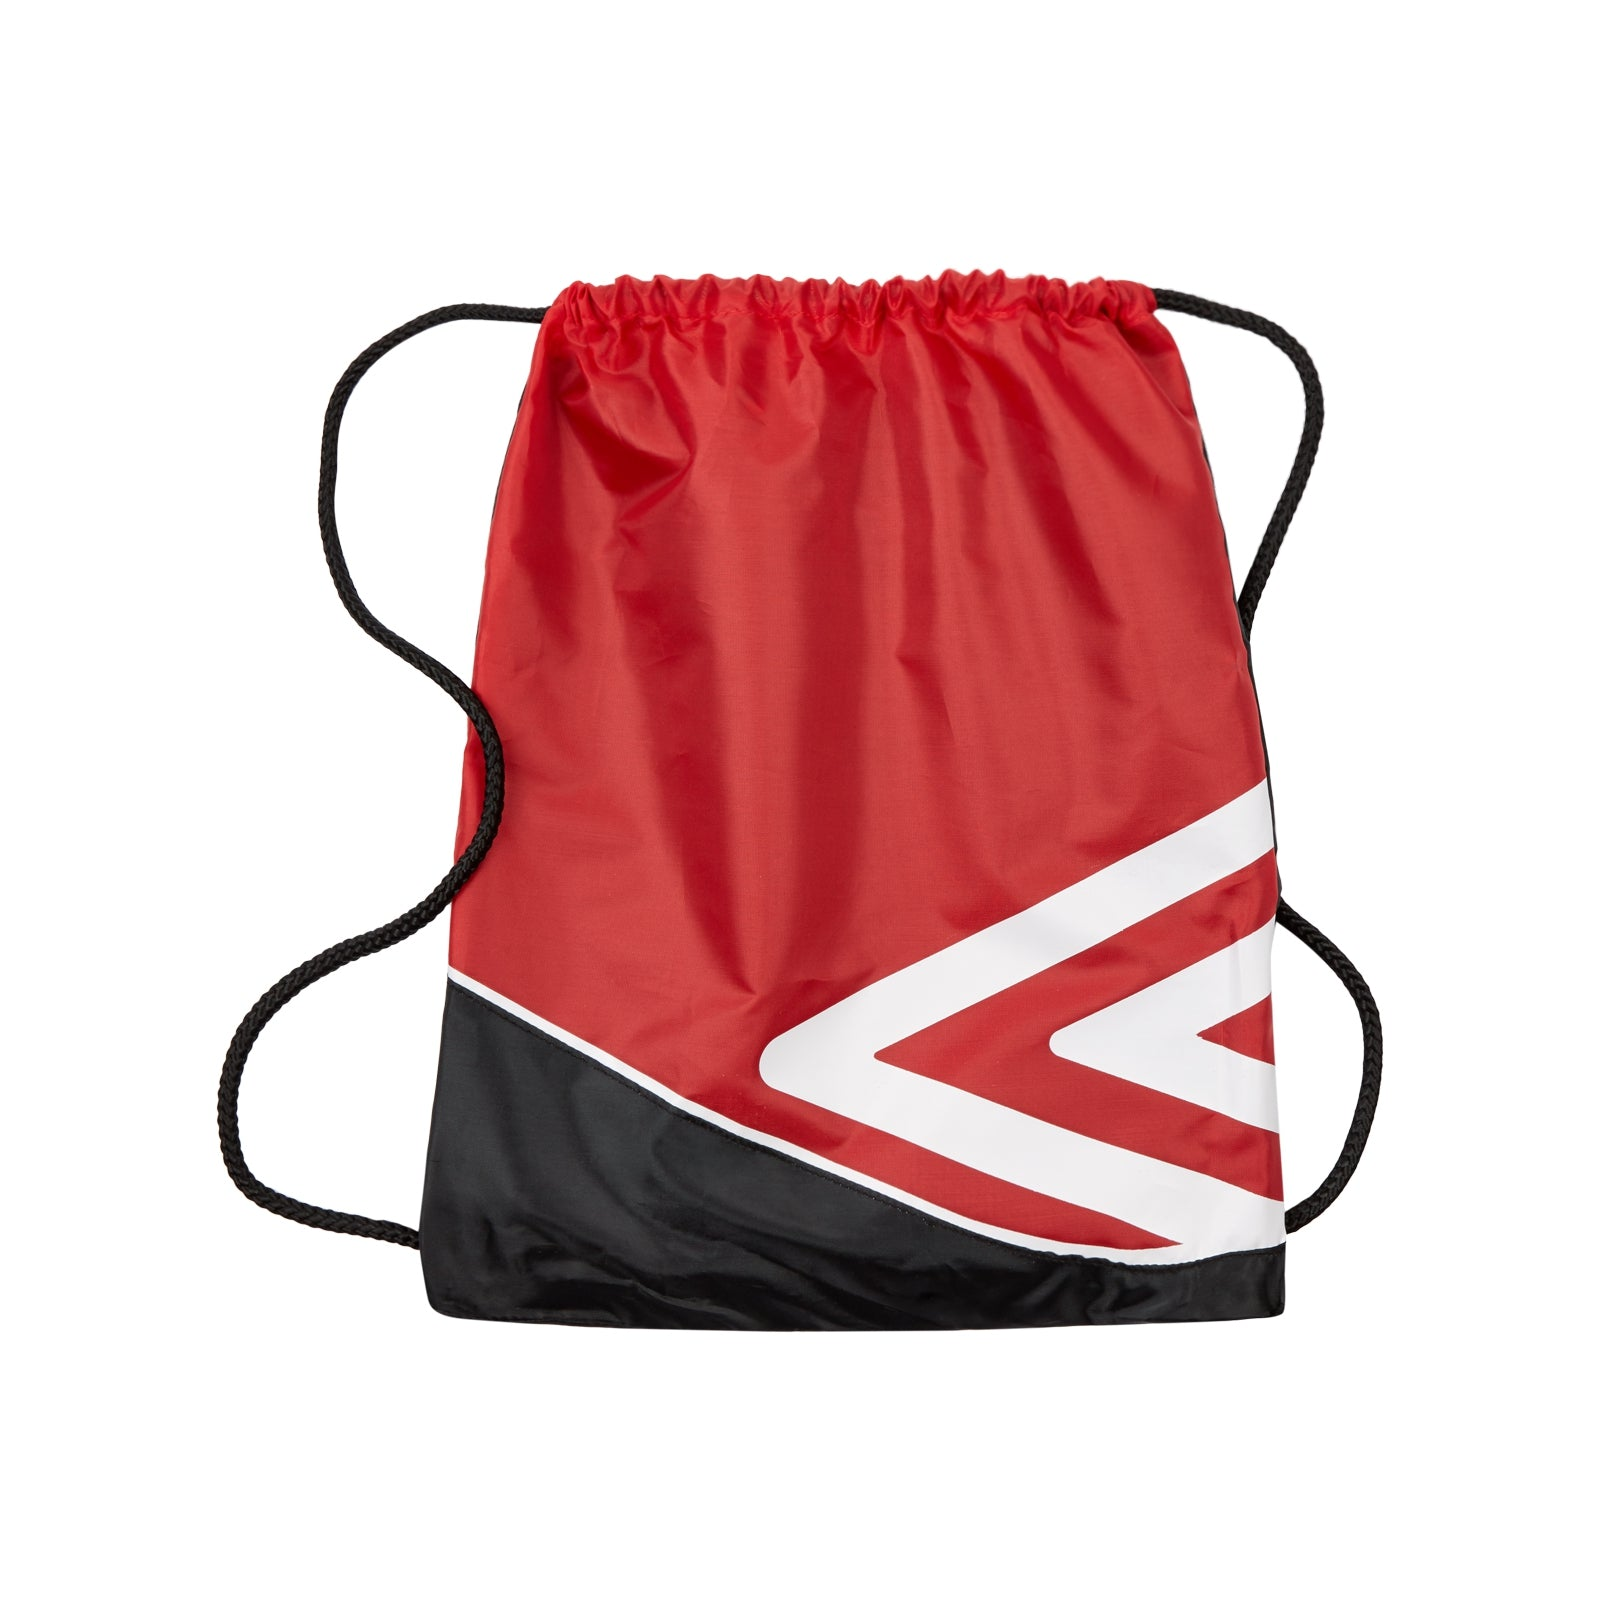 Umbro Pro Training Gymsack in red and black with large double diamond logo in white